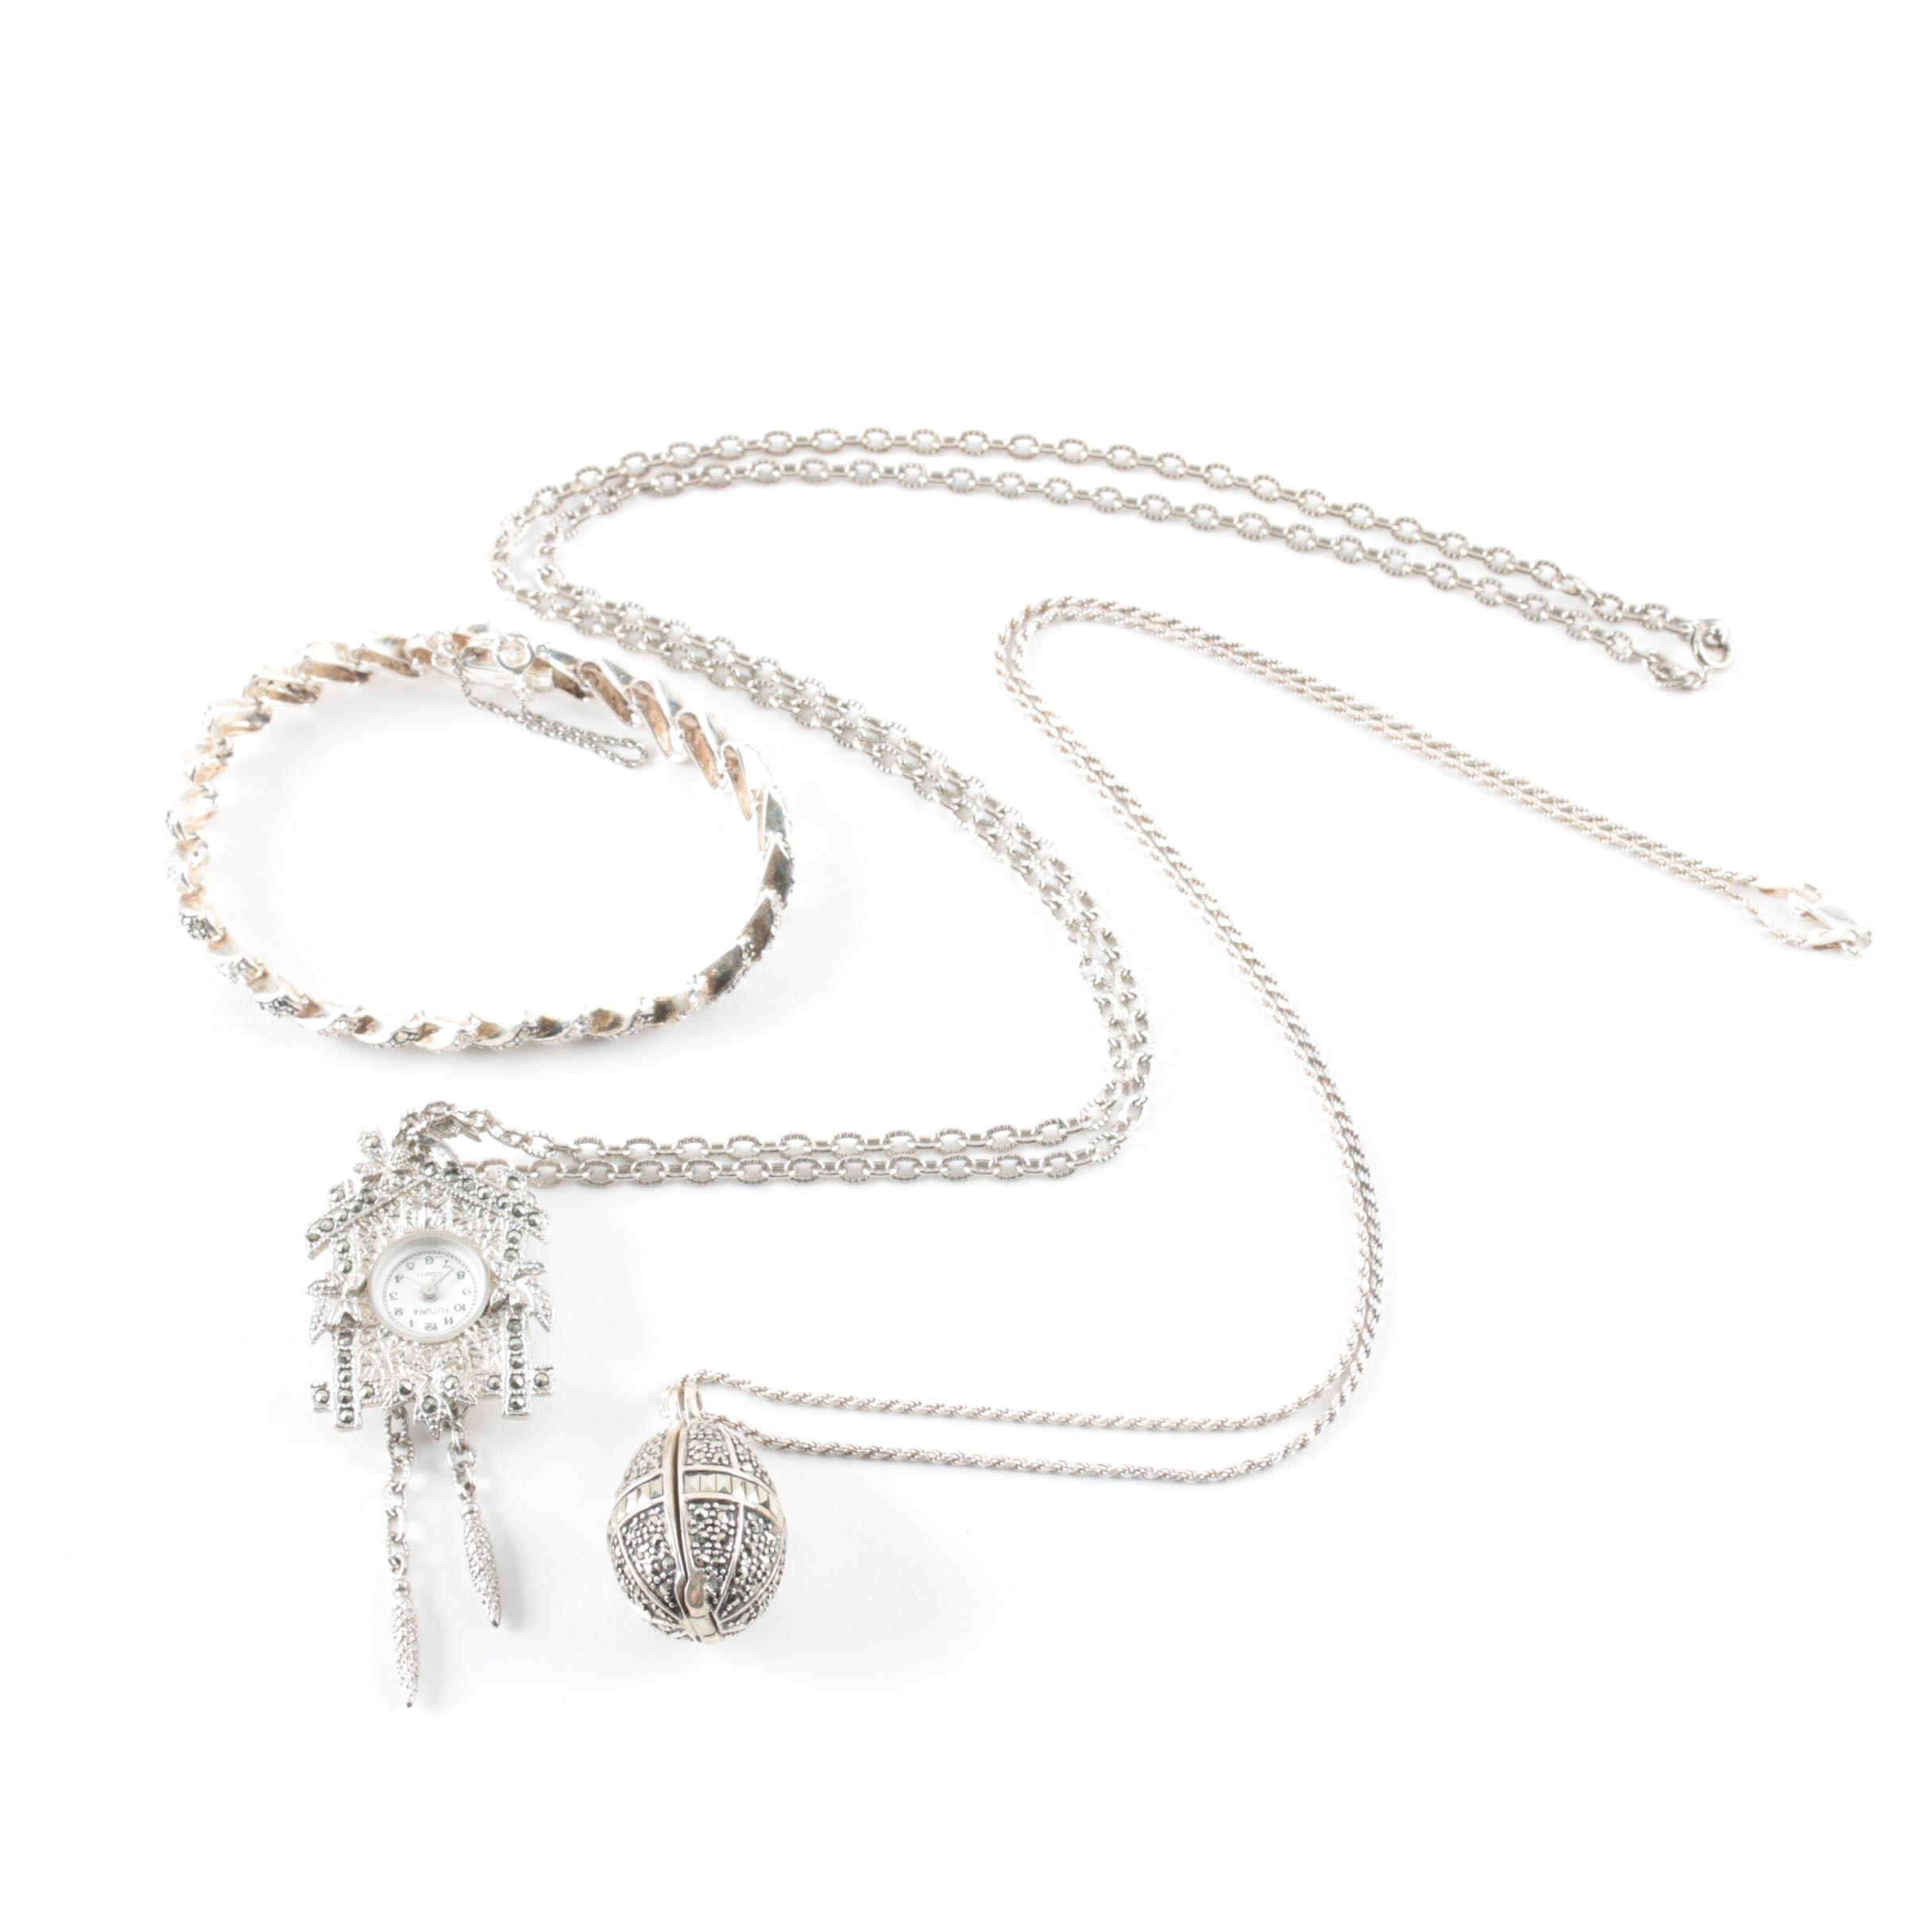 Sterling Silver and Silver-Tone Jewelry Selection With a Cuckoo Clock Necklace